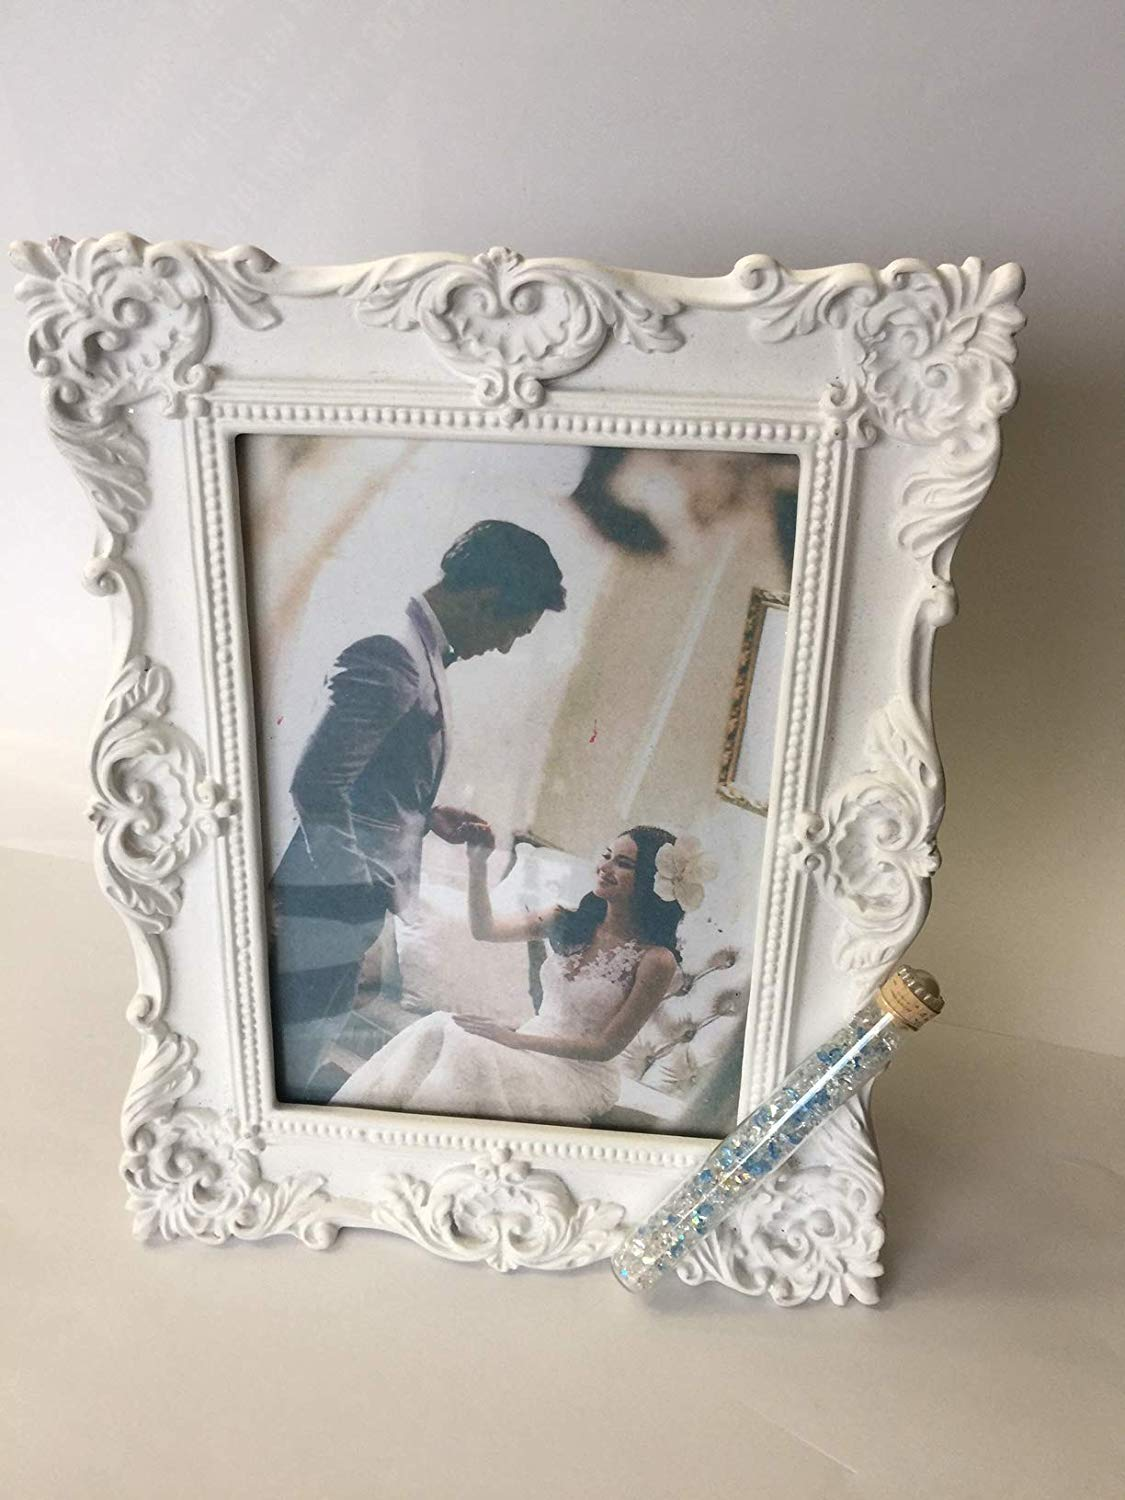 Jewish Wedding White Frame Photo Picture Frame With a Container for Broken Wedding Glass, 5 x 7 Picture Bridal Shower Or Wedding Gift